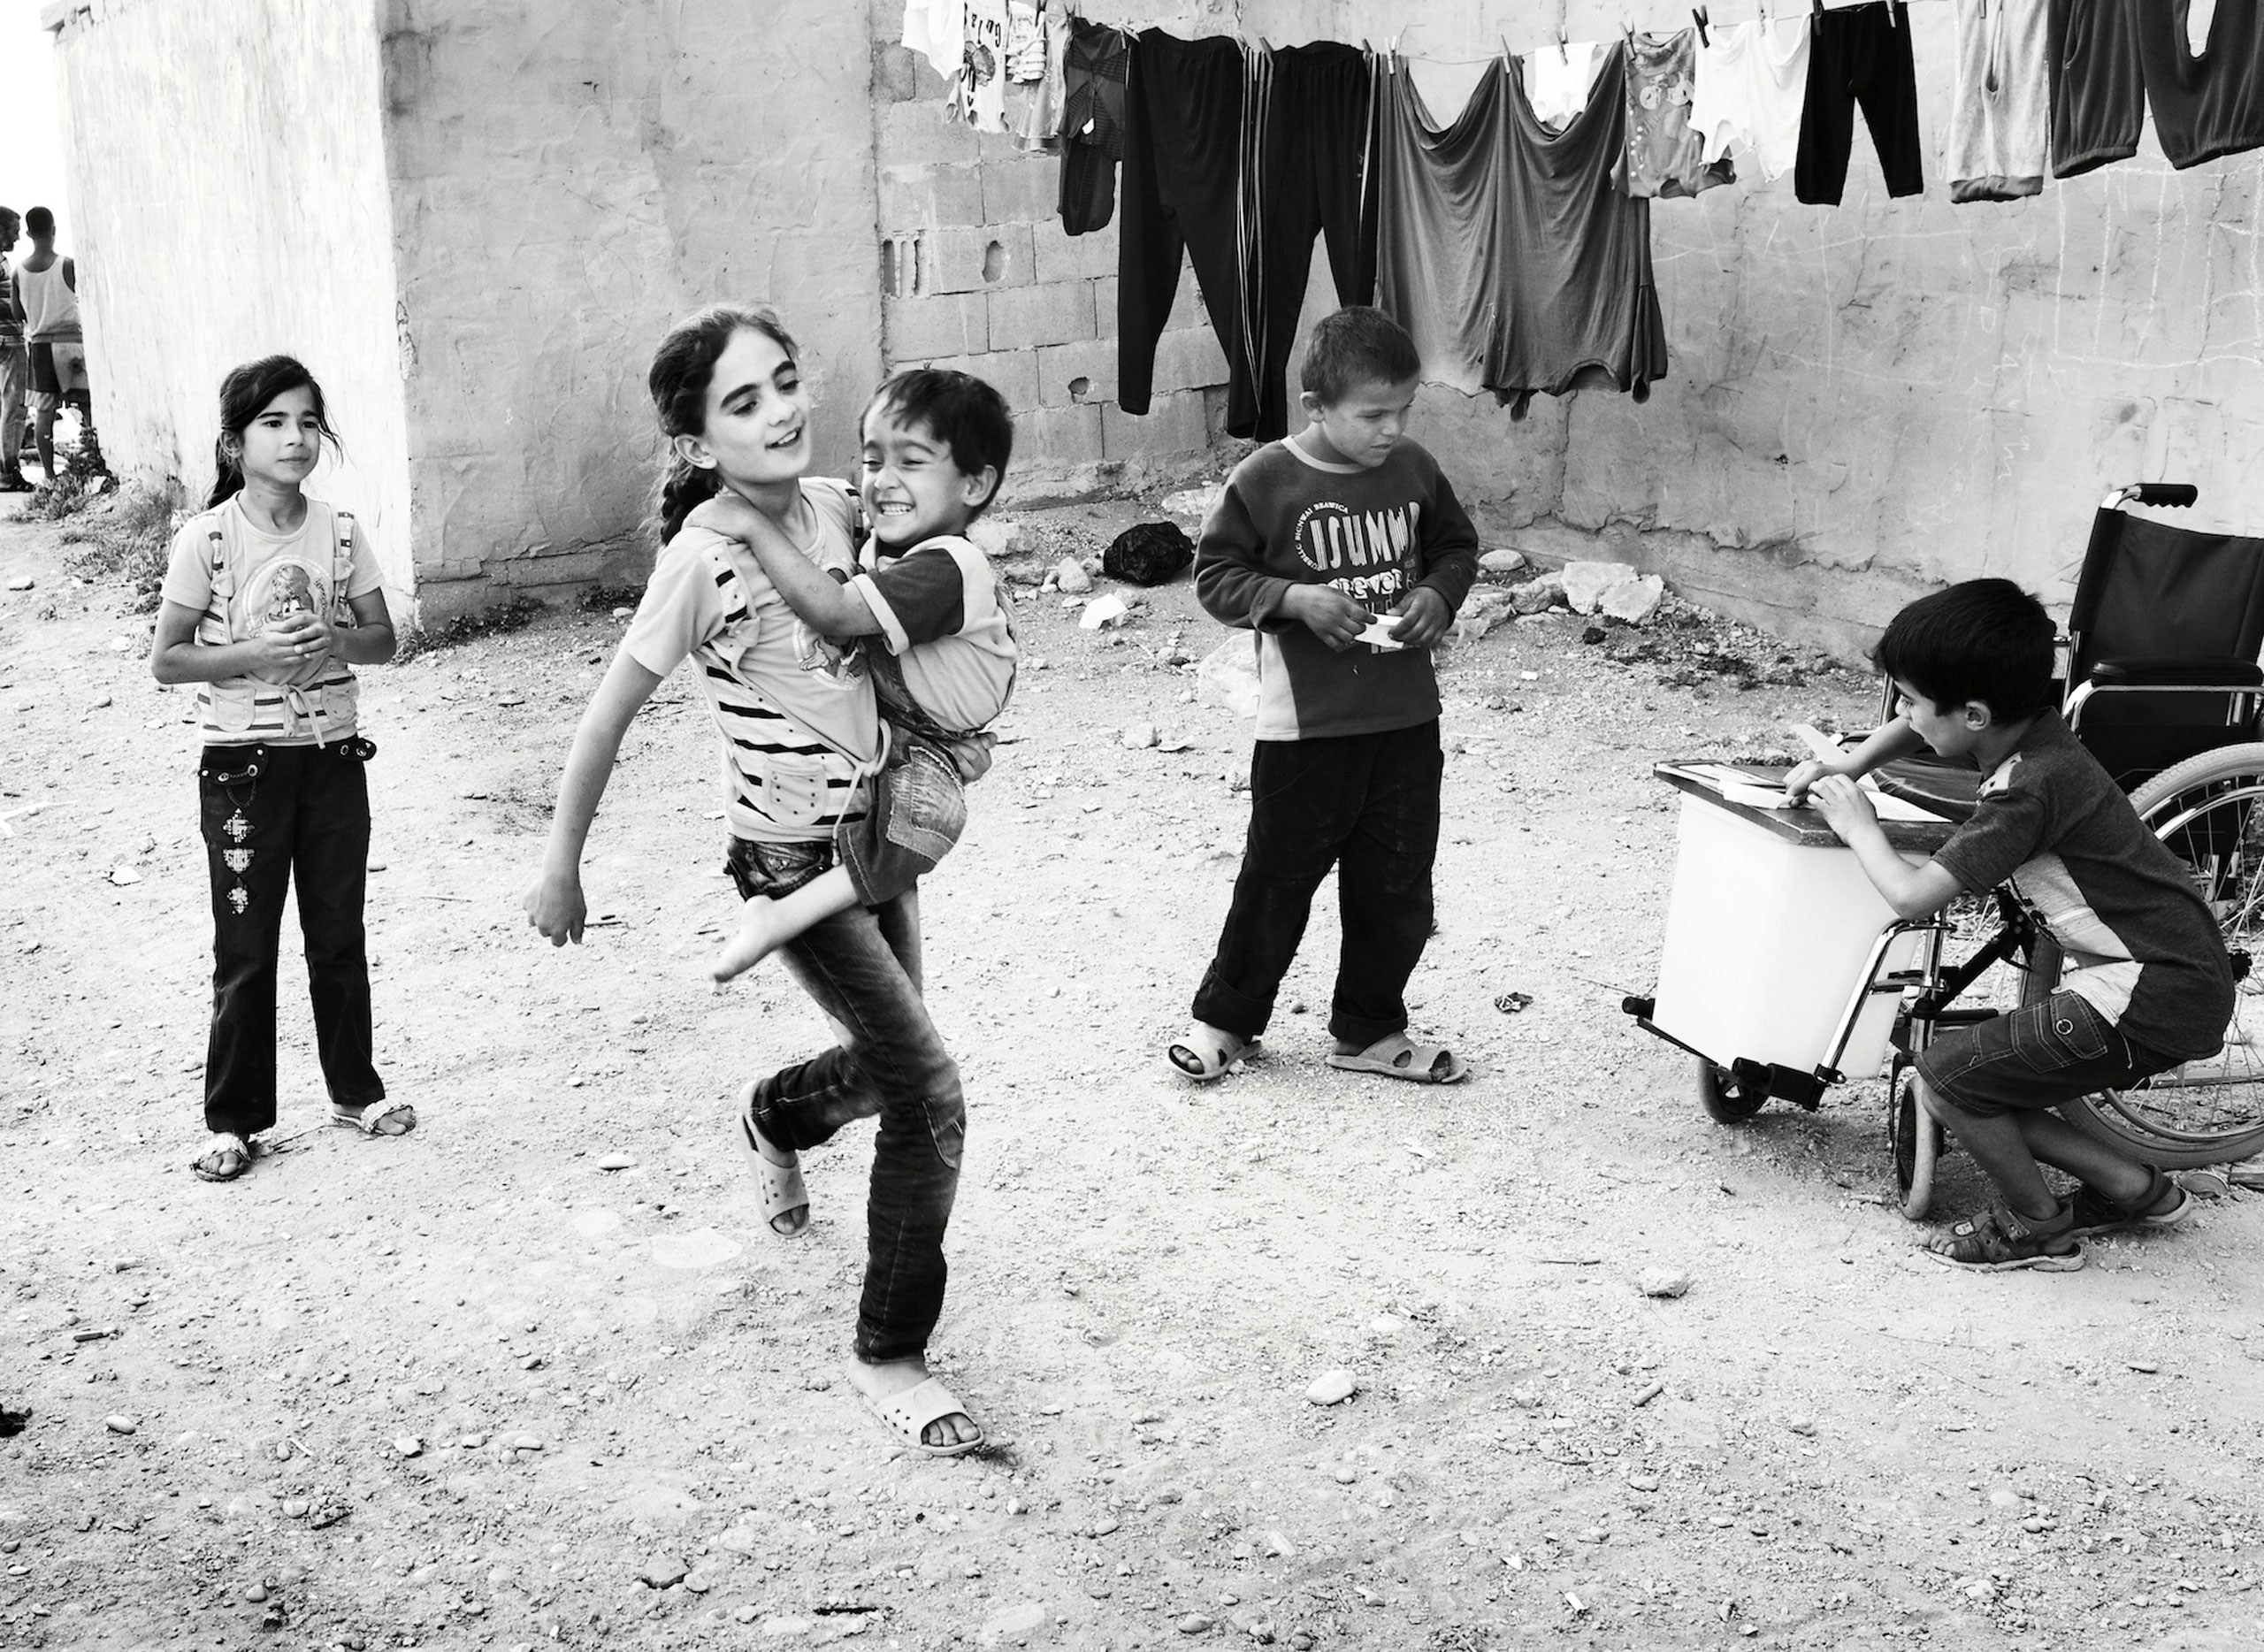 Lebanon 2014 Iman has carried her sister Aya, who is paralysed from Spina Bifida since she was a baby. She carried Aya in this way when they fled Syria, a journey that lasted two months. In the makeshift camp where they now live, they play hopscotch with the other children.